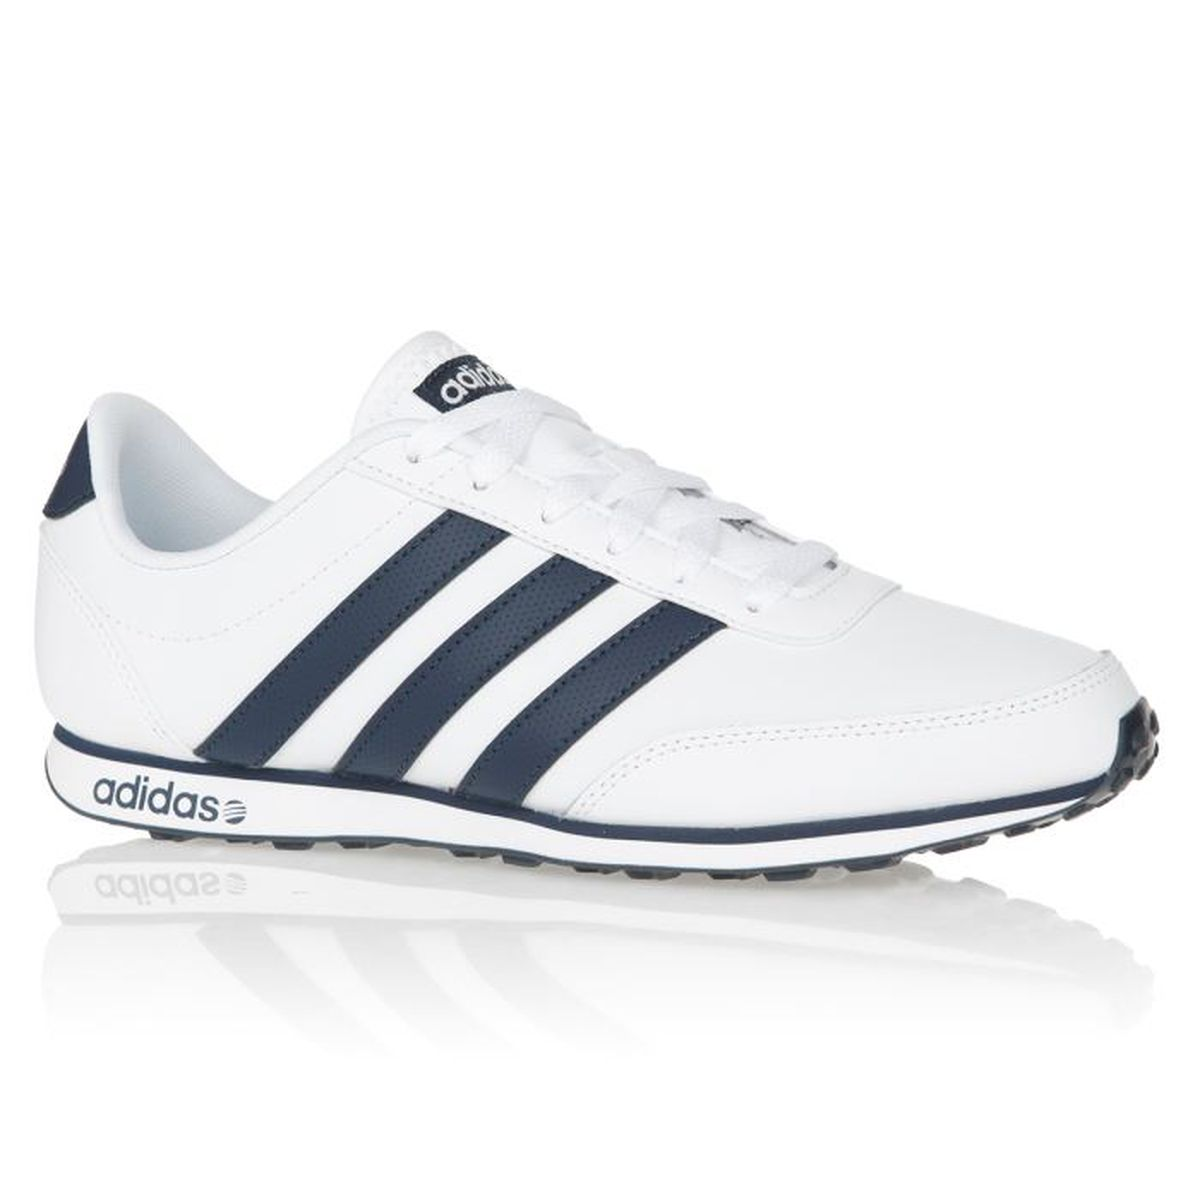 Adidas V Originals Et Chaussures Baskets Neo Racer Blanc Homme 29WEDHYI